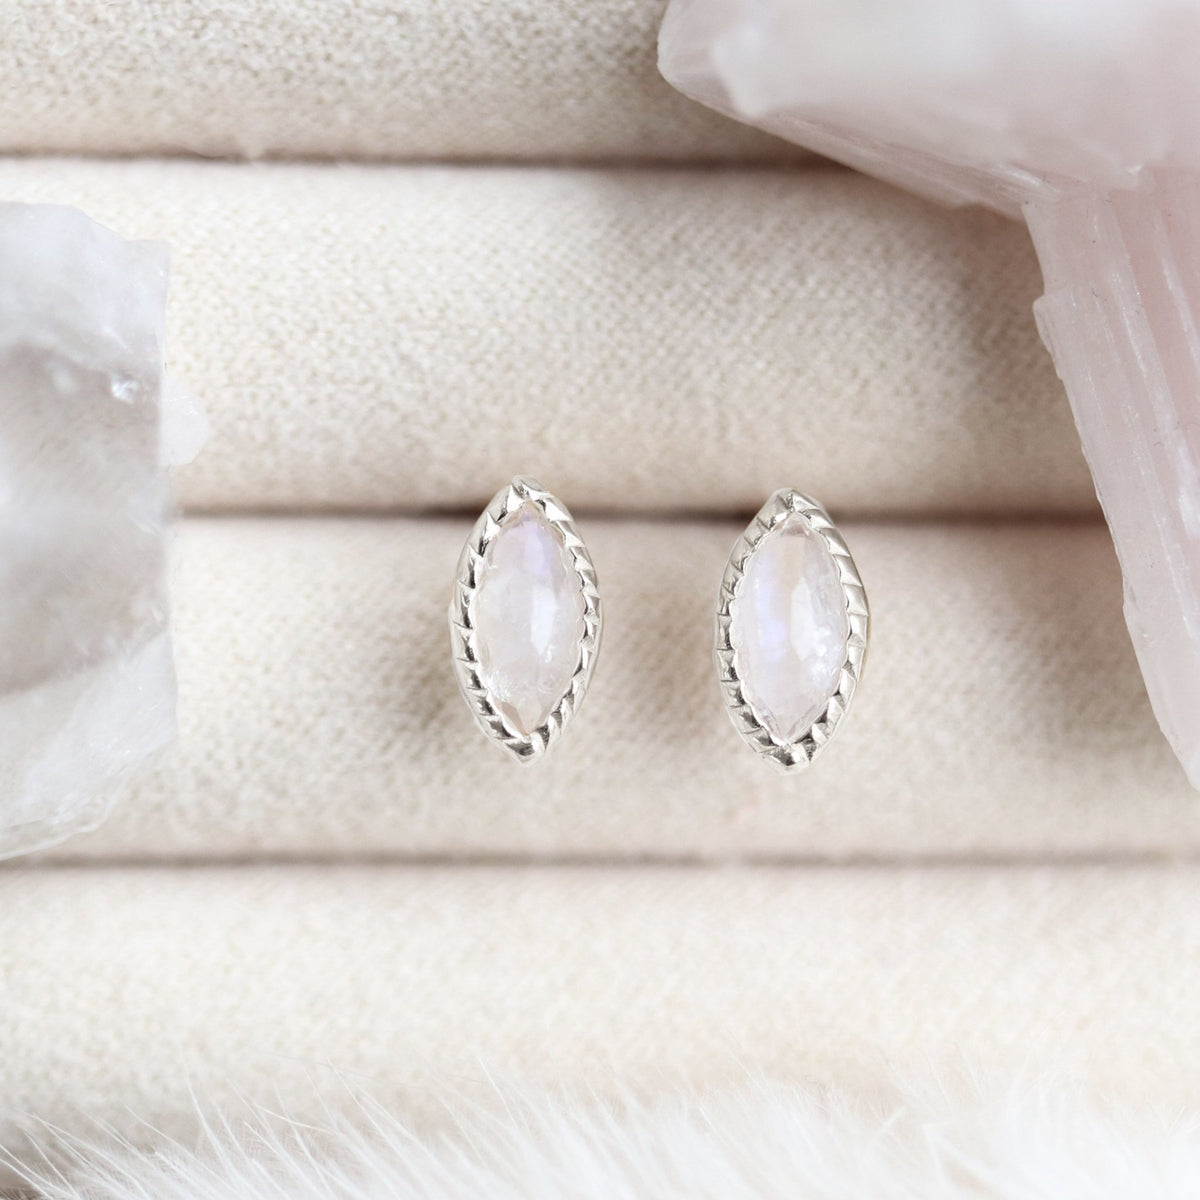 MINI TRUST STUD EARRINGS - MOONSTONE & SILVER - SO PRETTY CARA COTTER